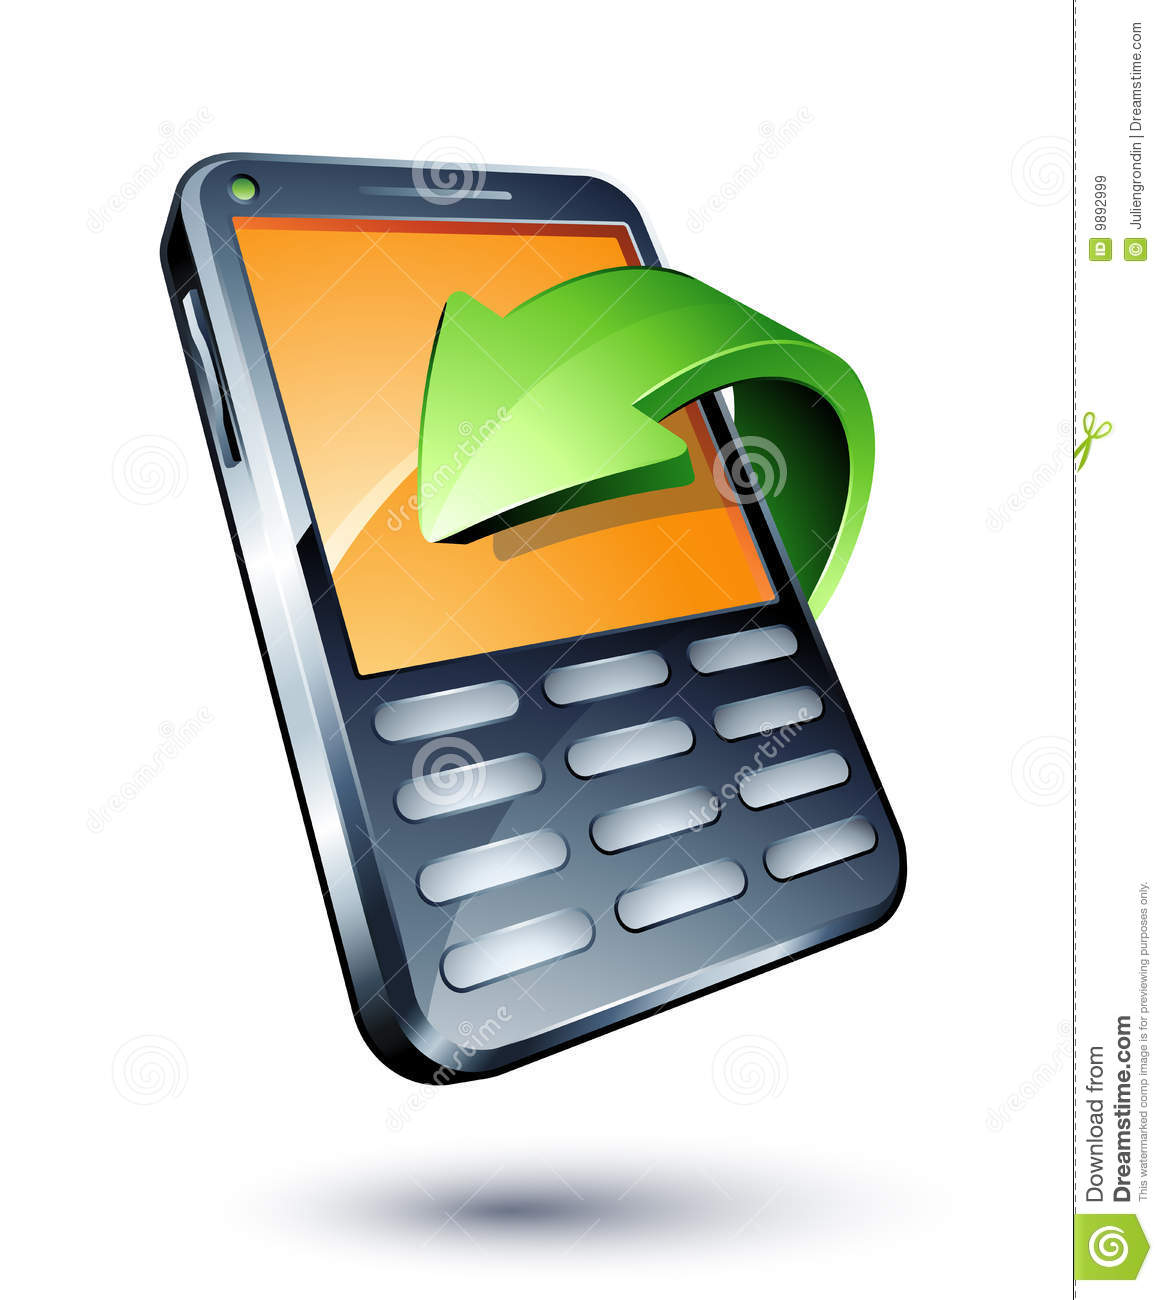 mobile phone and green arrow stock vector illustration Conference Call Meeting conference call clipart free